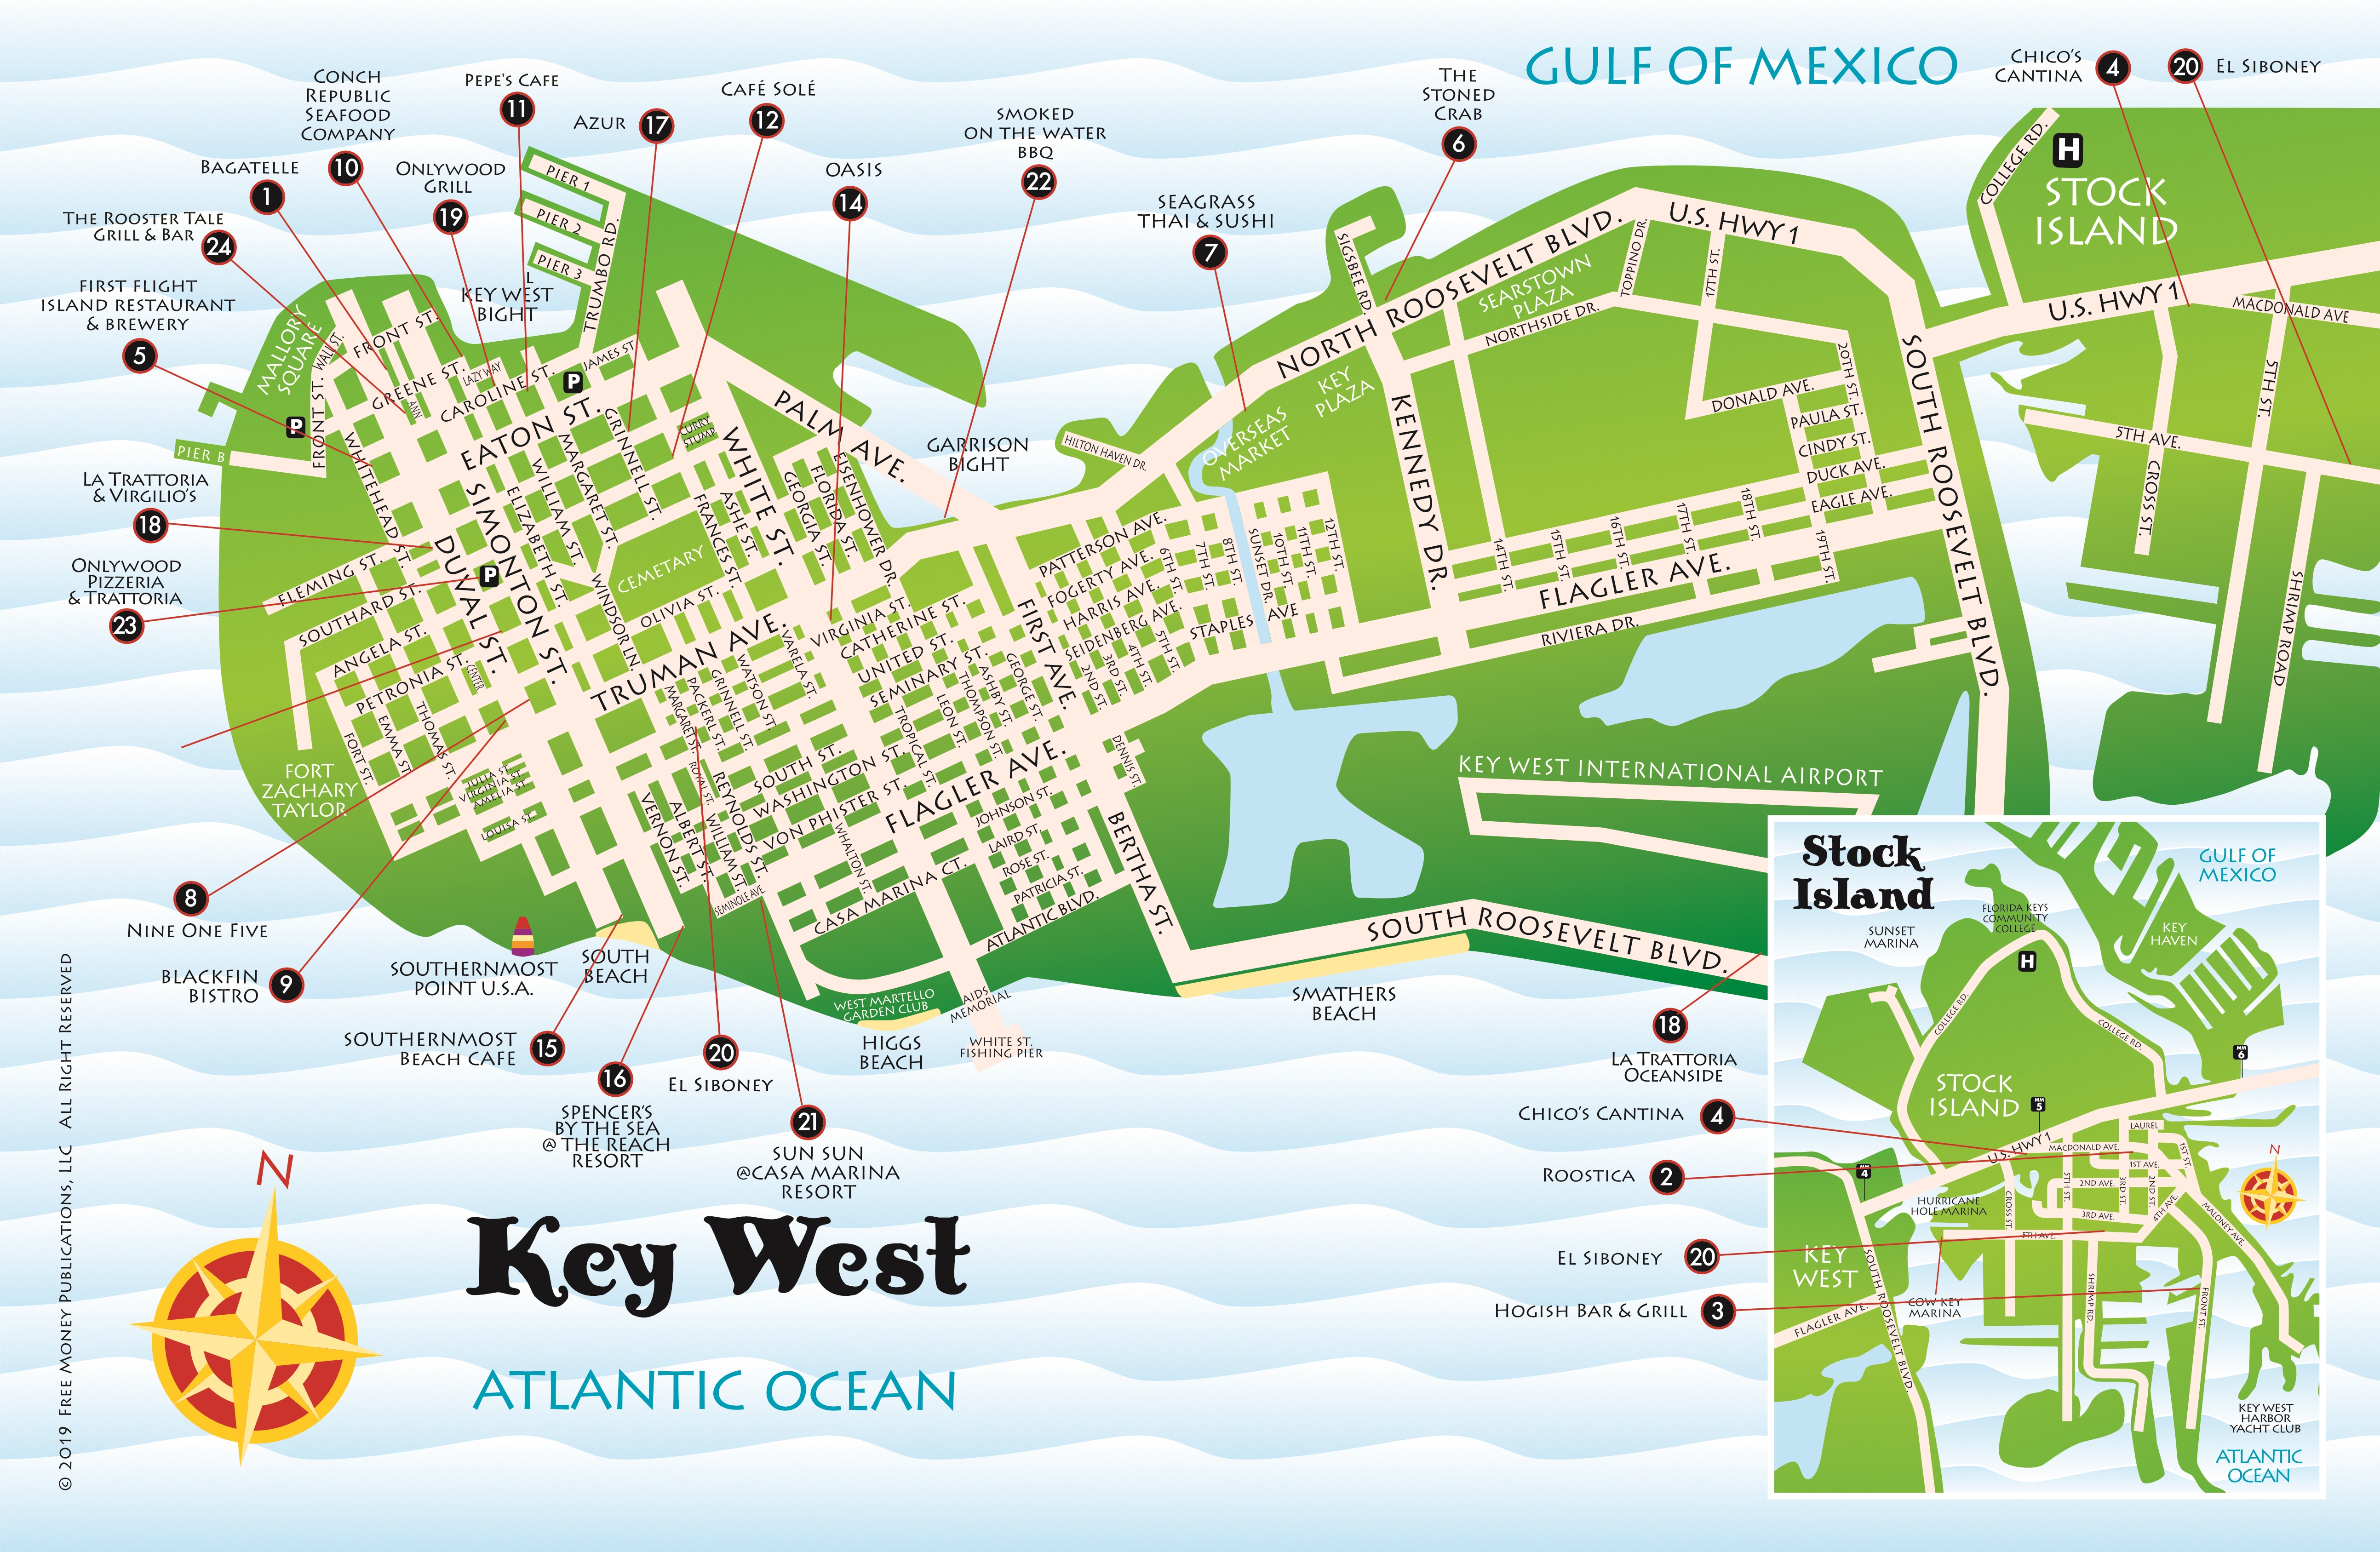 Maps, Key West / Florida Keys – Best Key West Restaurant ... on special purpose map, karratha western australia map, choropleth map, mappa mundi, star chart, russia location map, city map, bank of america locations map, thematic map, bihar india map, plan your road trip map, west us map, impz dubai location map, physical map, geologic map, islamabad location on map, grid map, darfur location on map, france location map, topographic map, topological map, world map, address map, pictorial maps, hyderabad location on map, lagos nigeria on map, istanbul location on map, key map, t and o map, walmart international locations map,